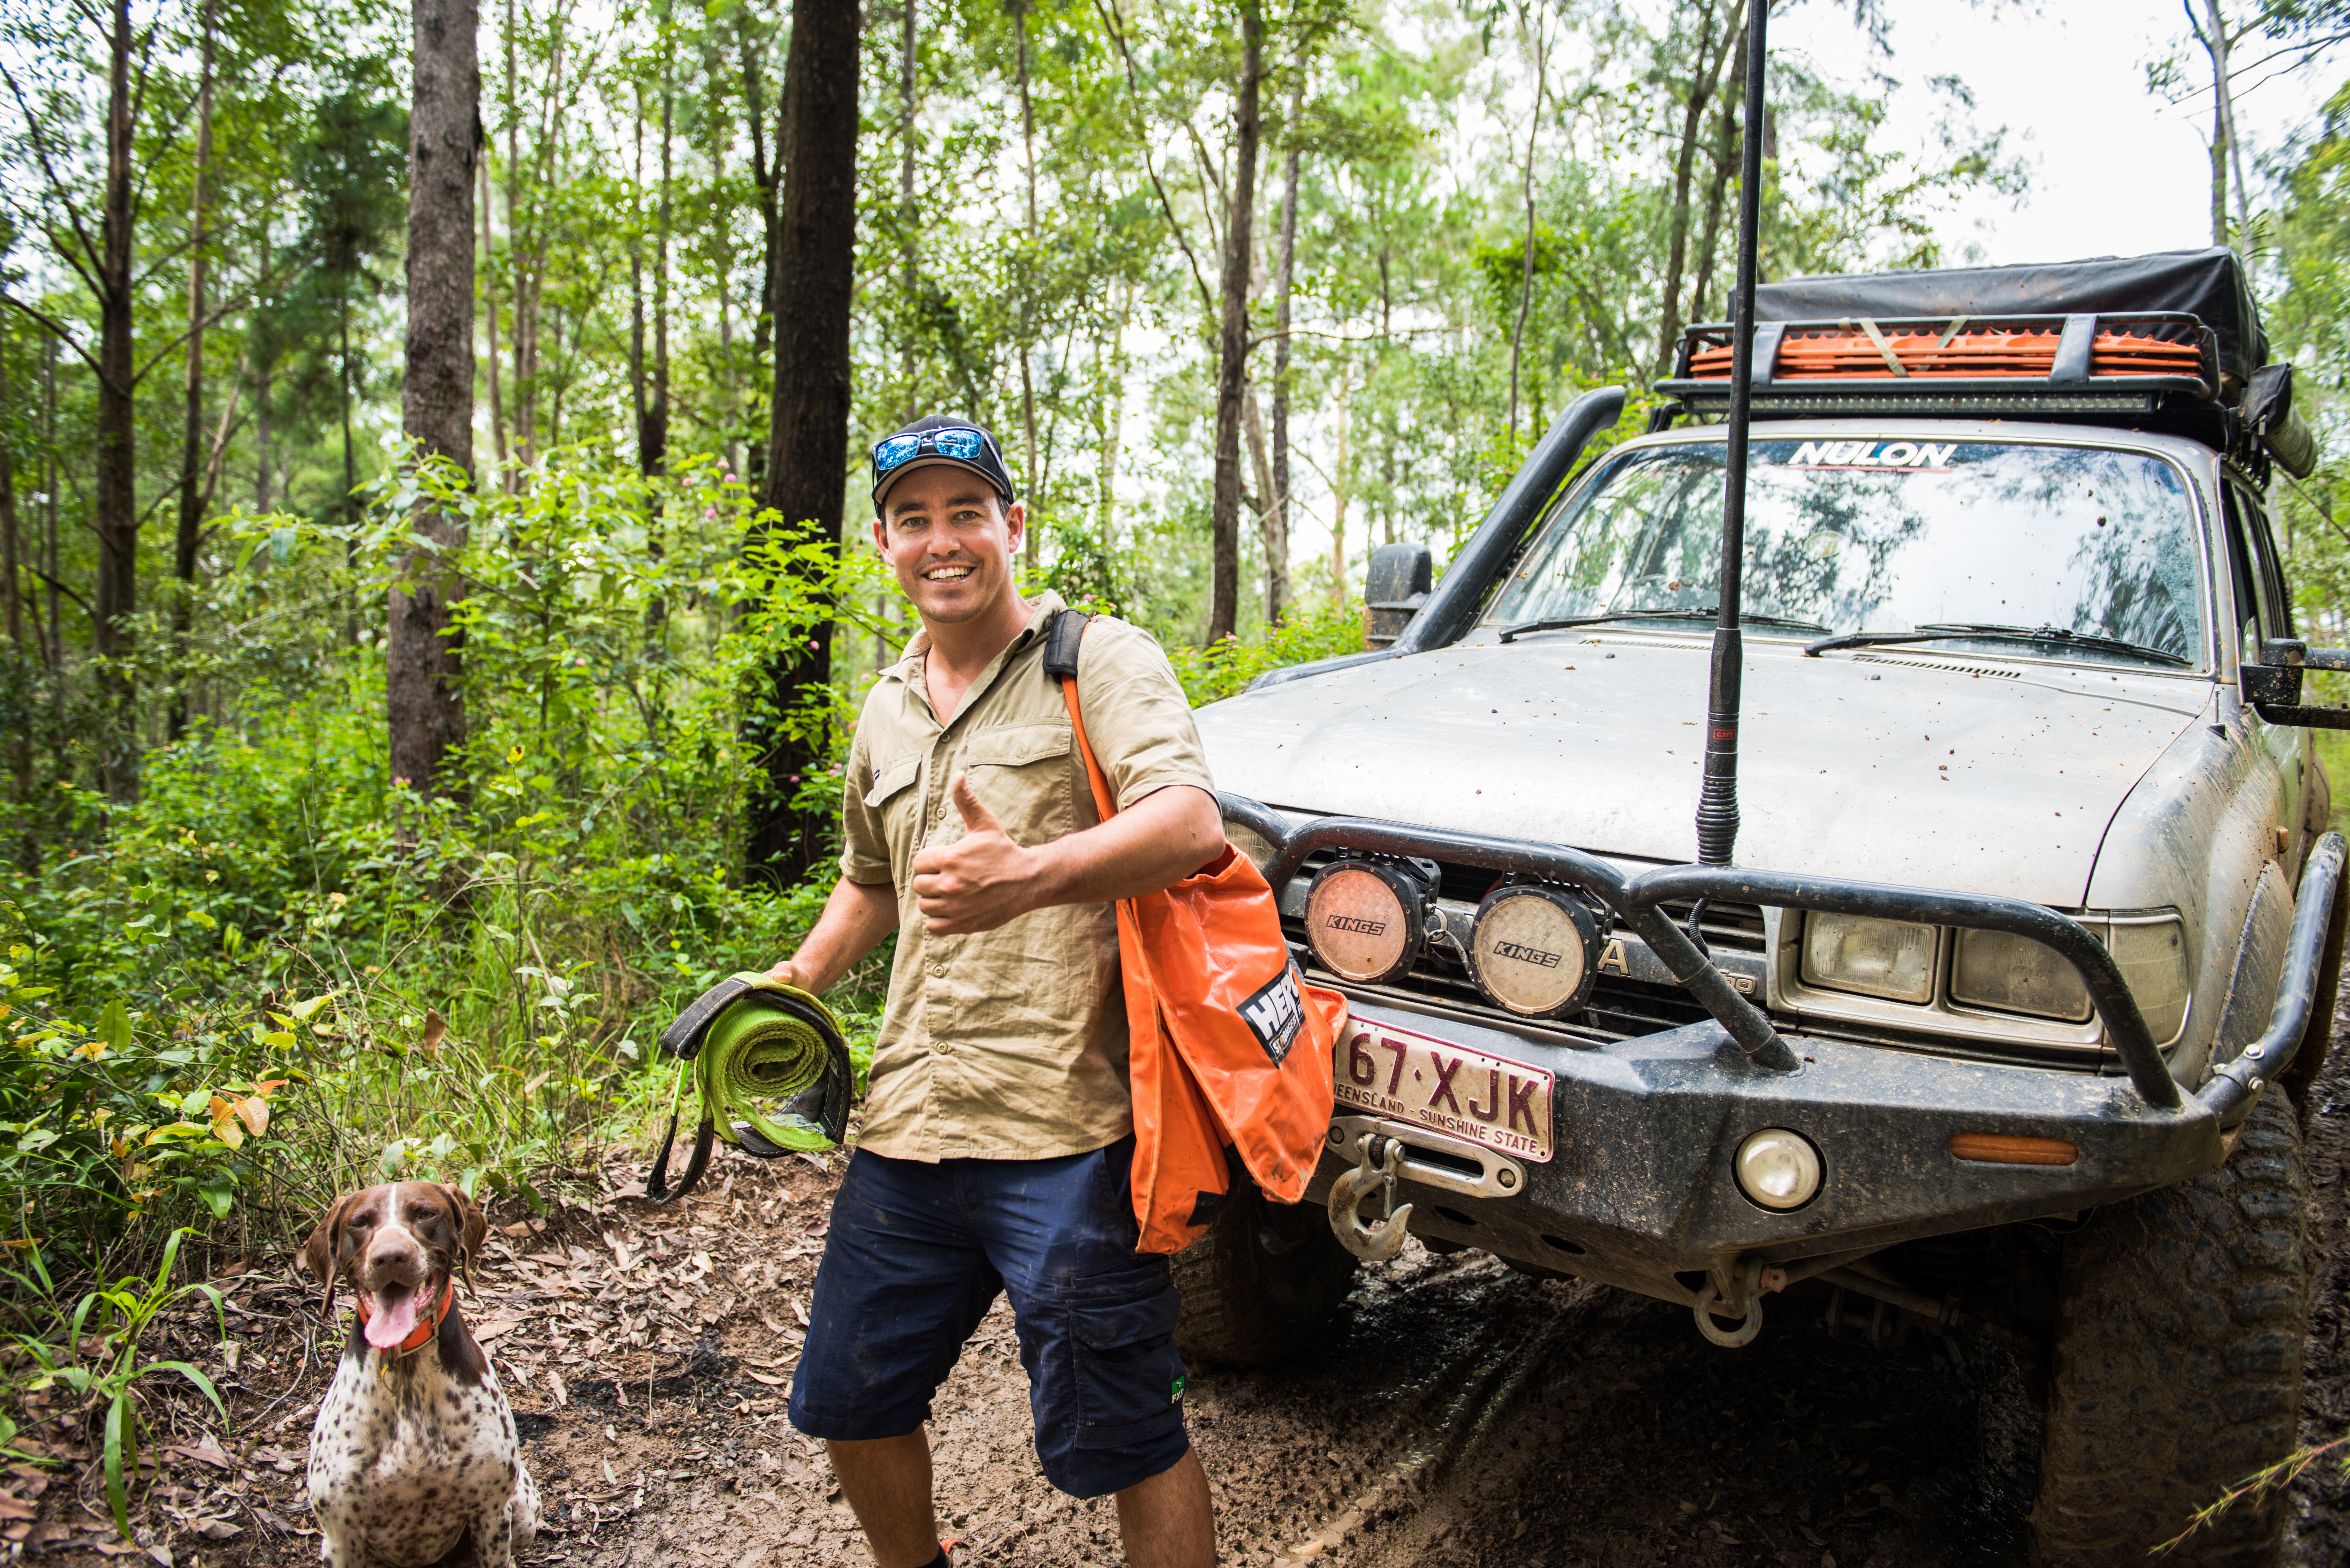 SUMMER CAMPING ORGANISATION - image Glasshouse-supacentre-6684 on https://www.4wdsupacentre.com.au/news